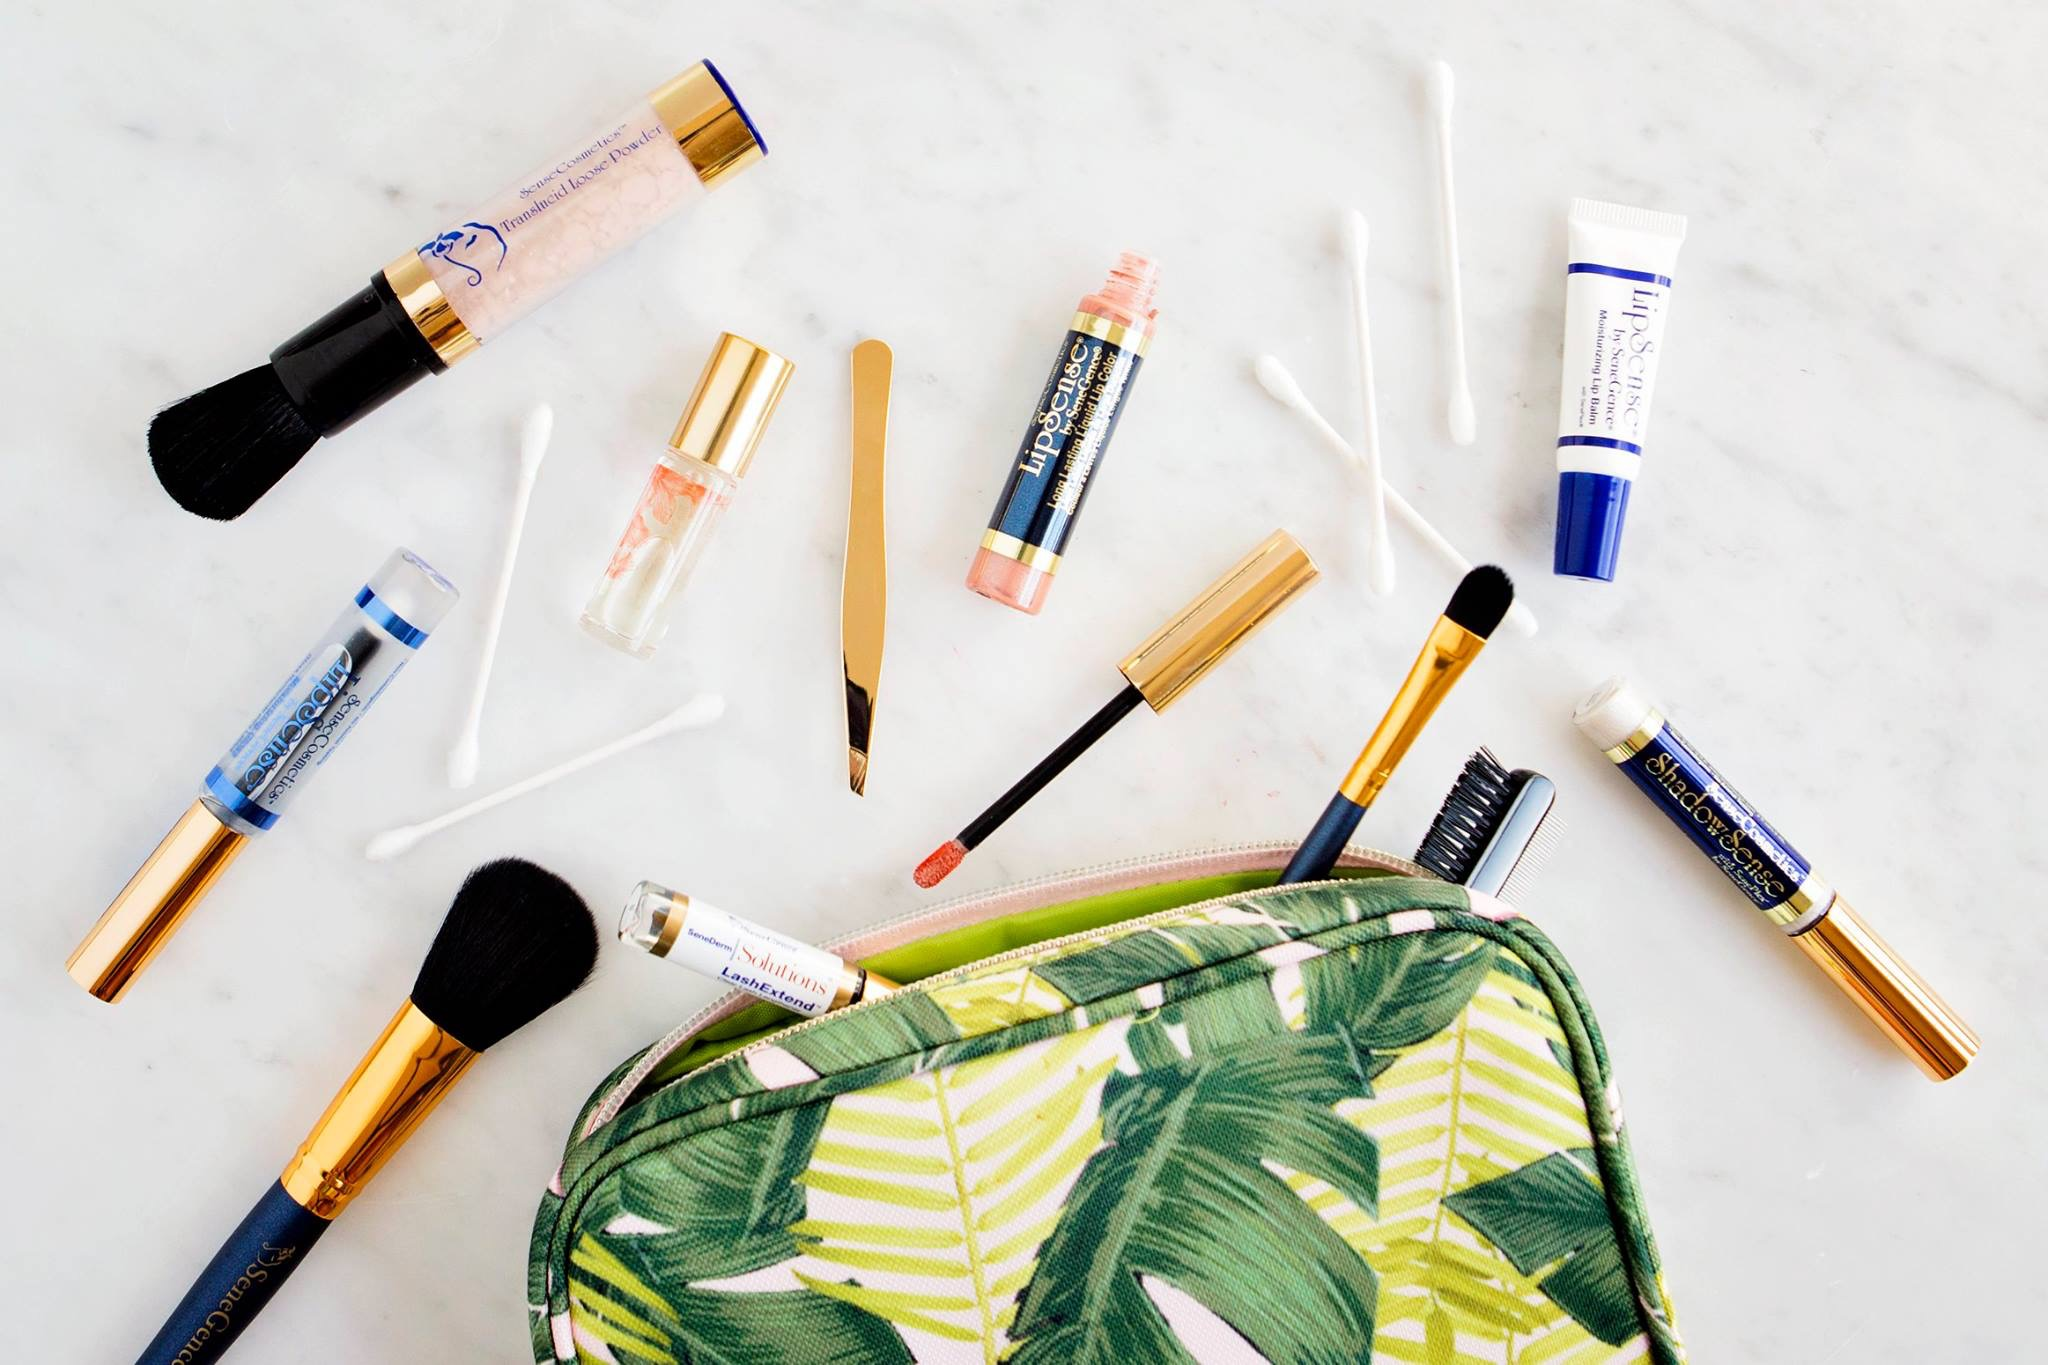 want these products? - Browse all these fabulous long lasting products. You'll fall in love & won't be sorry you did!